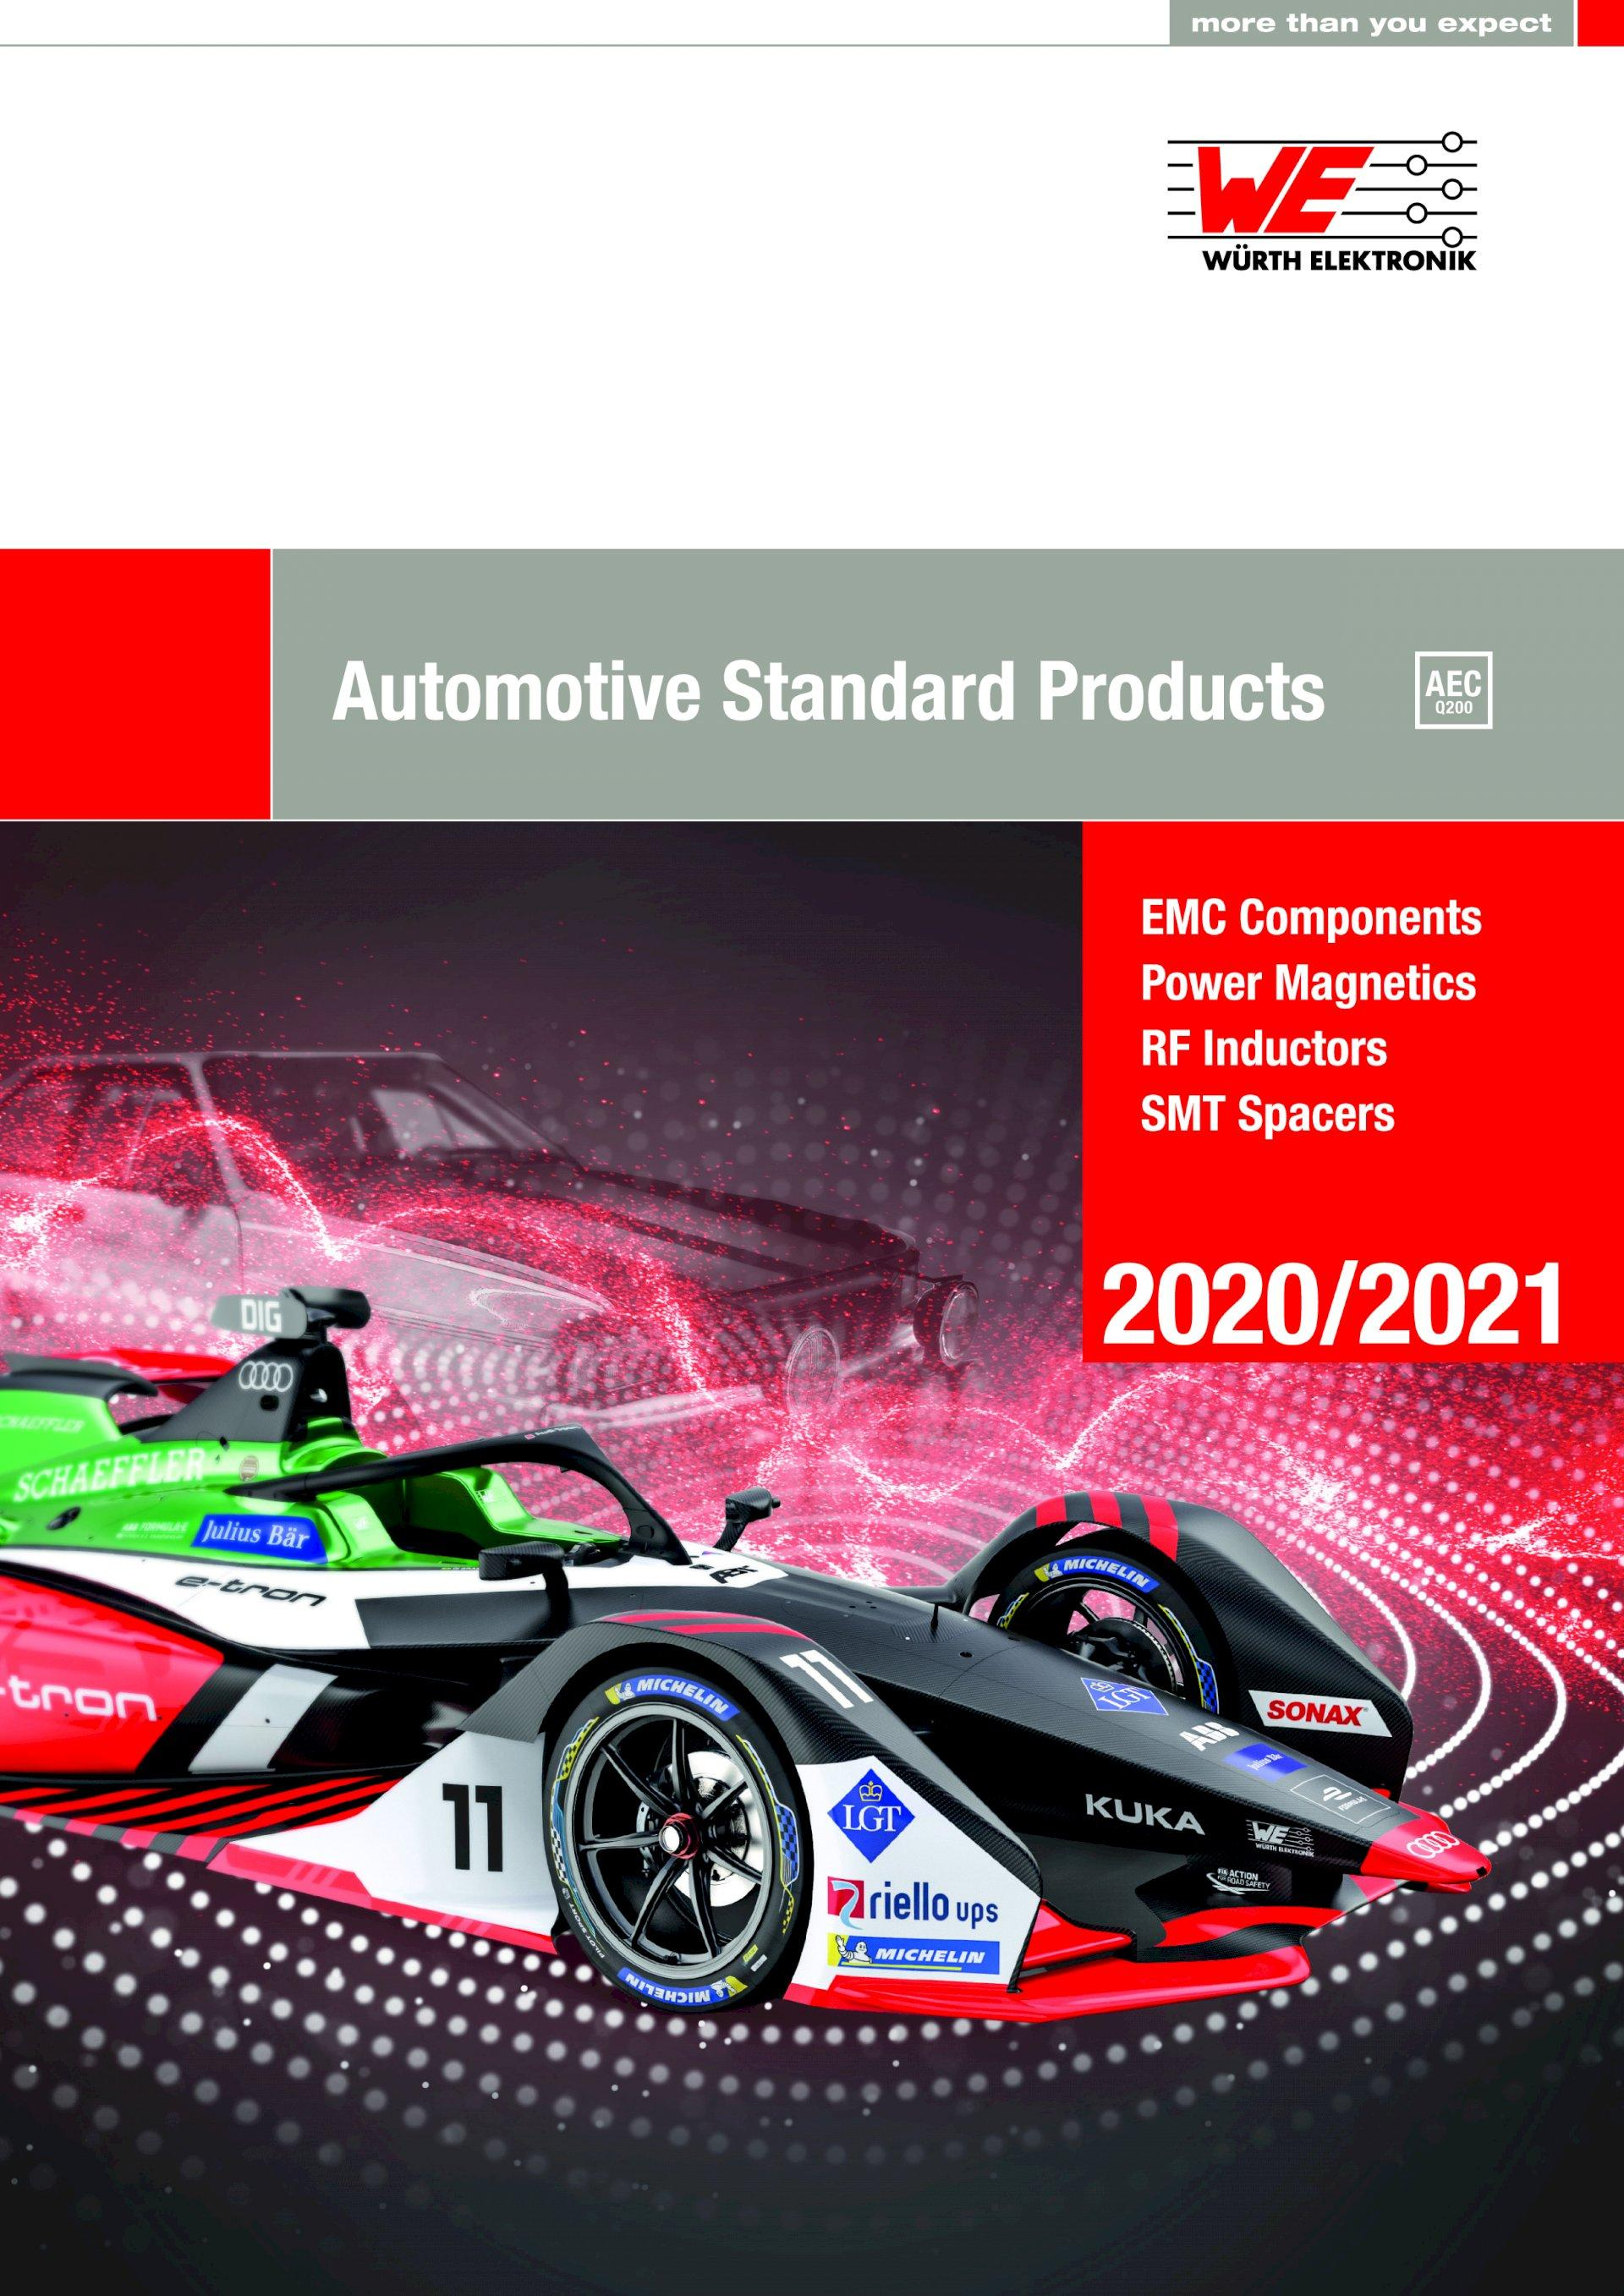 New Würth Elektronik Automotive Components Catalog